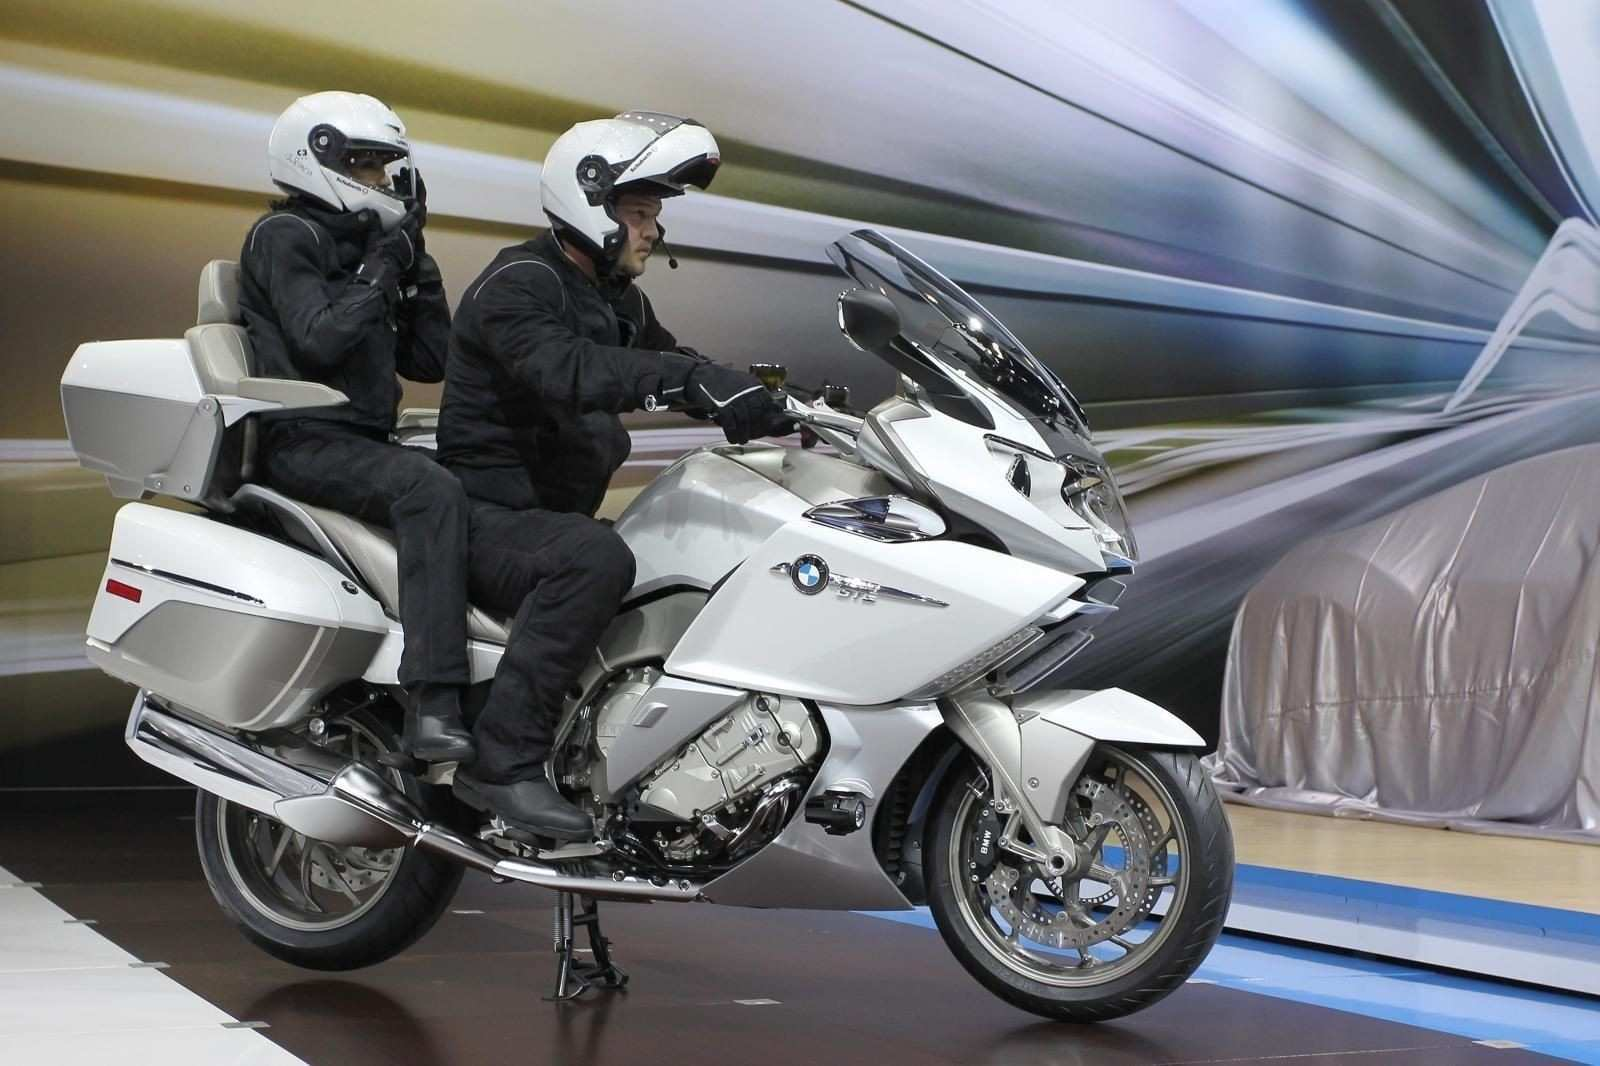 14 All New Best 2019 Bmw K1600Gtl Redesign Price And Review Release for Best 2019 Bmw K1600Gtl Redesign Price And Review